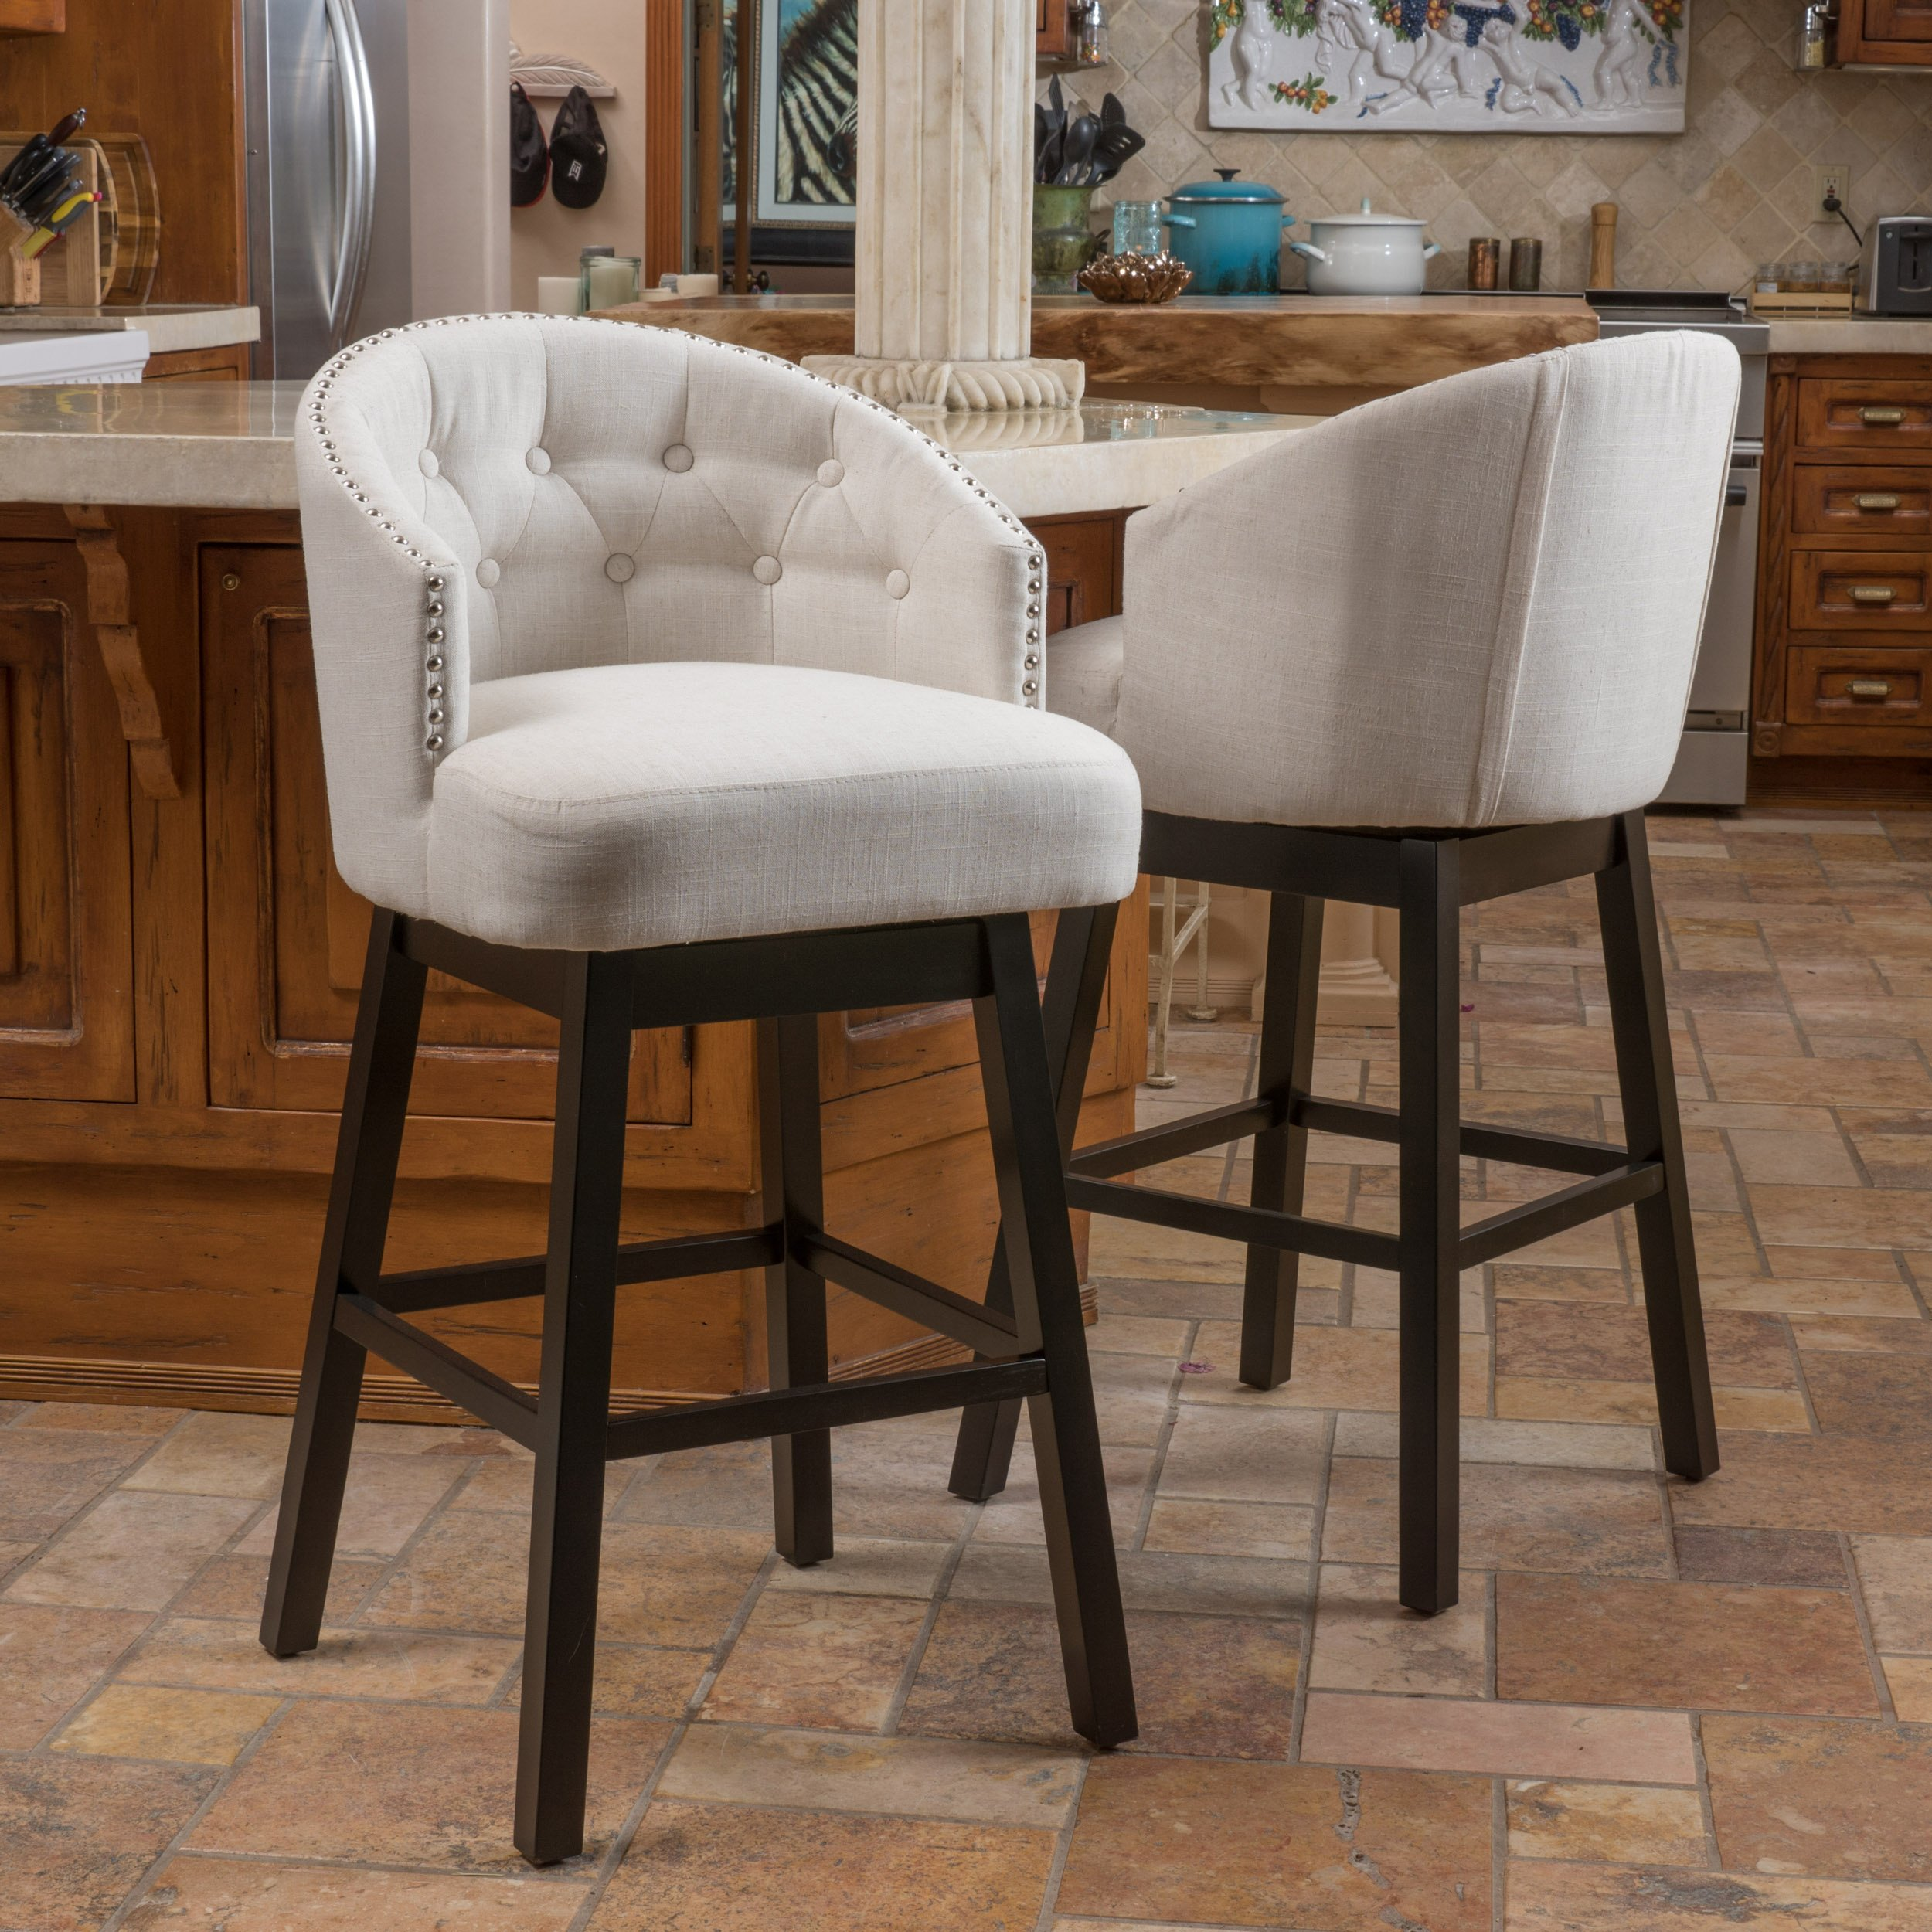 Westman Swivel Bar Stools | Full Backed | Button Tufted | Fabric in Beige (Set of 2)